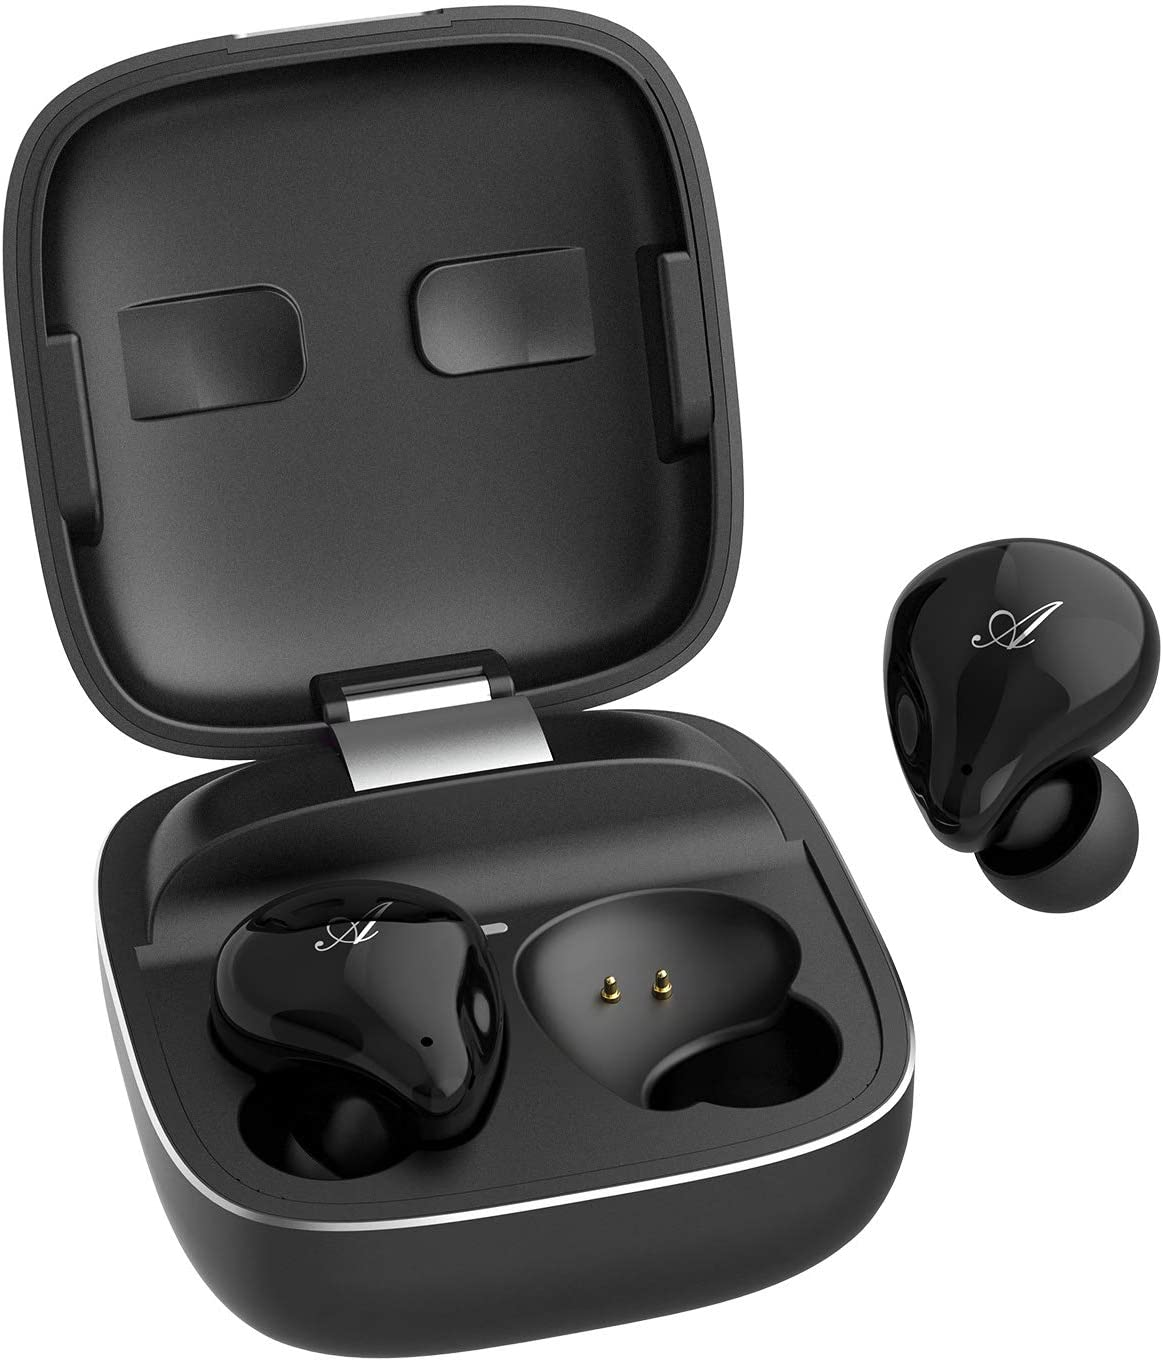 Wireless Earbuds DOSS FreePods Bluetooth 5.0 Premium Deep Bass Touch Control True Wireless Earbuds IPX5 Waterproof 30 Hours Playtime with Aluminum Charging Dual Digital Mics for Call,Work,Home Office